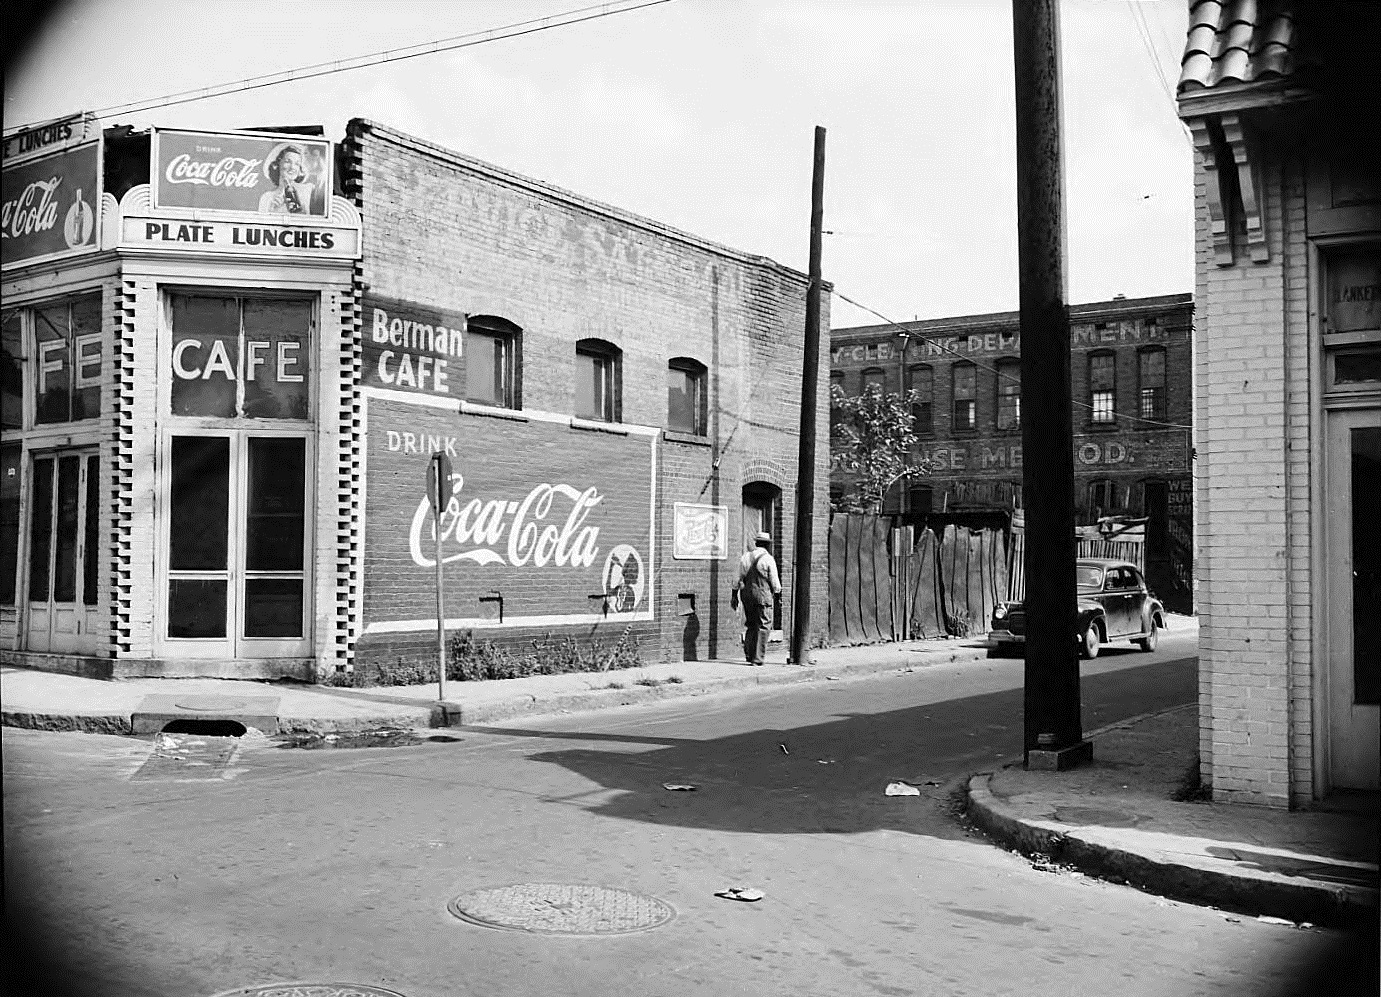 A Picture from the 1940's or 1950's showing Bermans Cafe on Edgewood Avenue - The Trio Laundry Building is behind it - Georgia State University Library